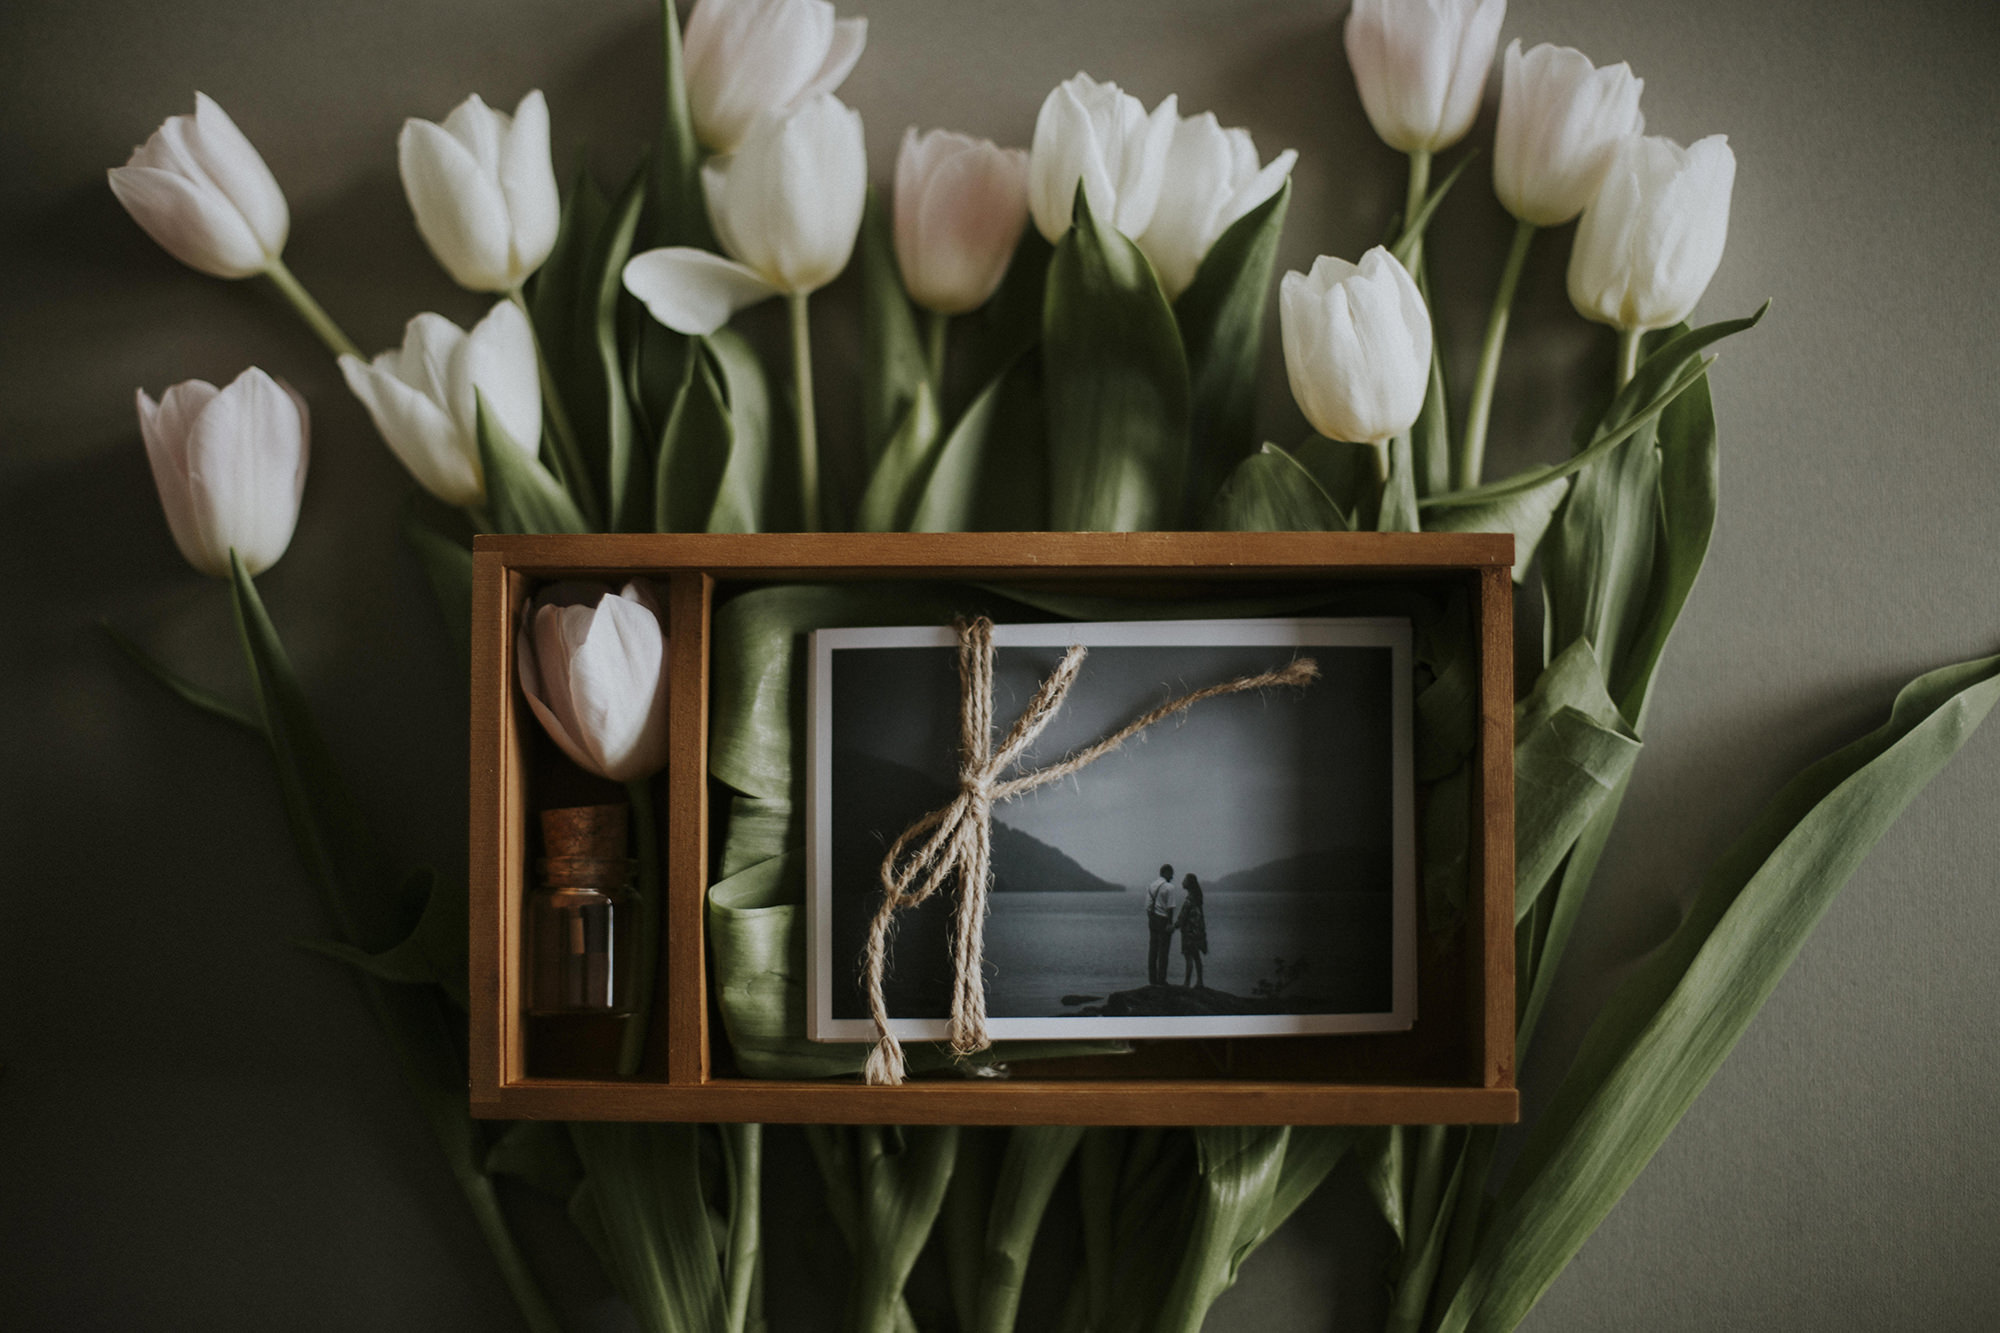 Our WOODEN PRESENTATION BOxes are beautiful keep sakes.Choose 10 of your selected images and we print them alongside your wedding usb to cherish. -